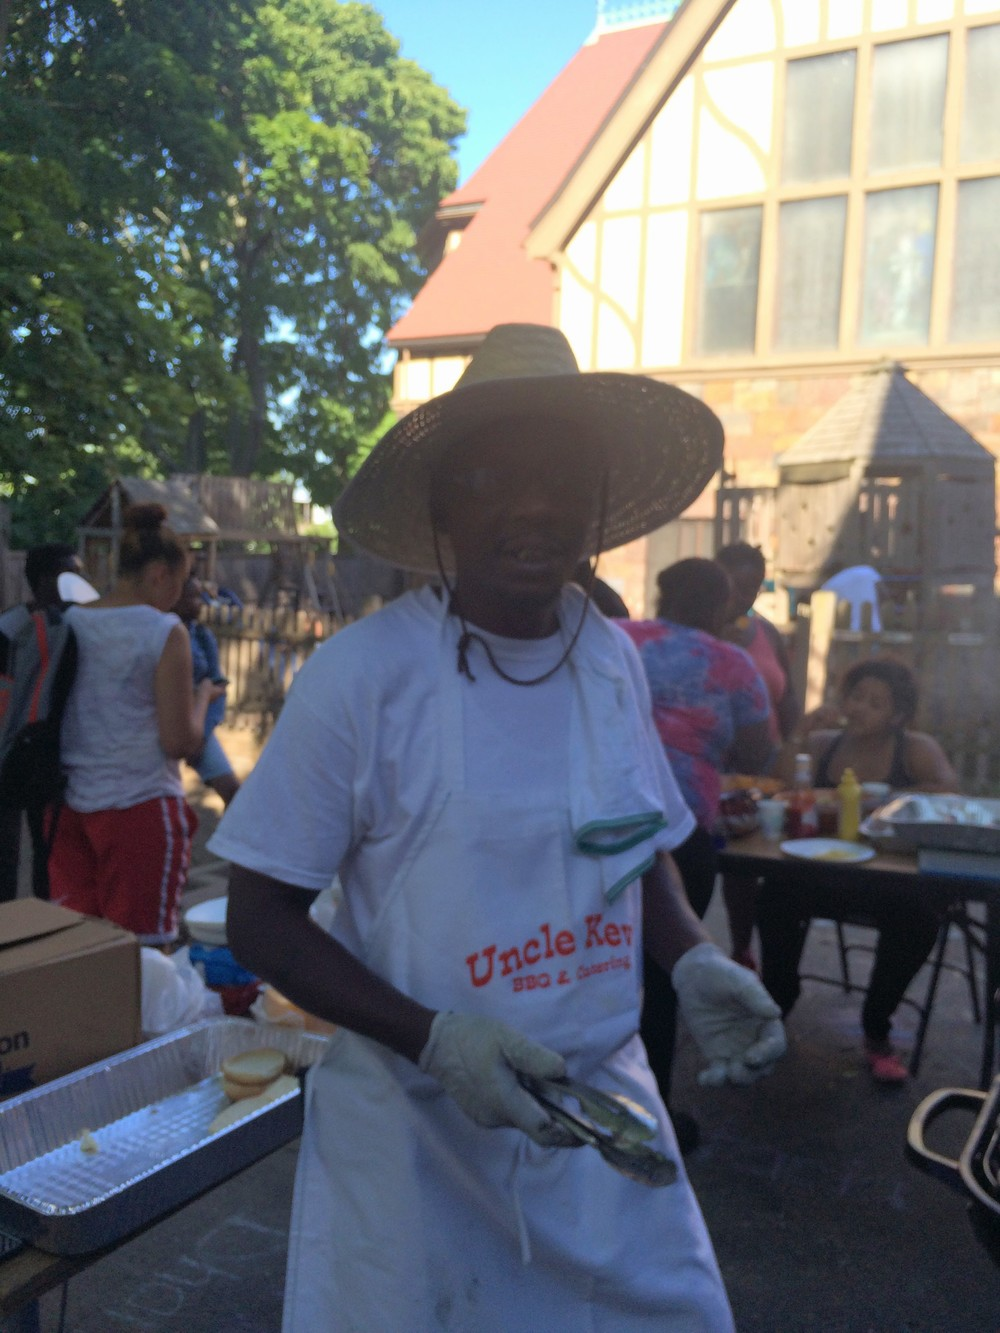 Kevin, a dad a St. Mary's, volunteered his outdoor catering company to grill for the BBQ.